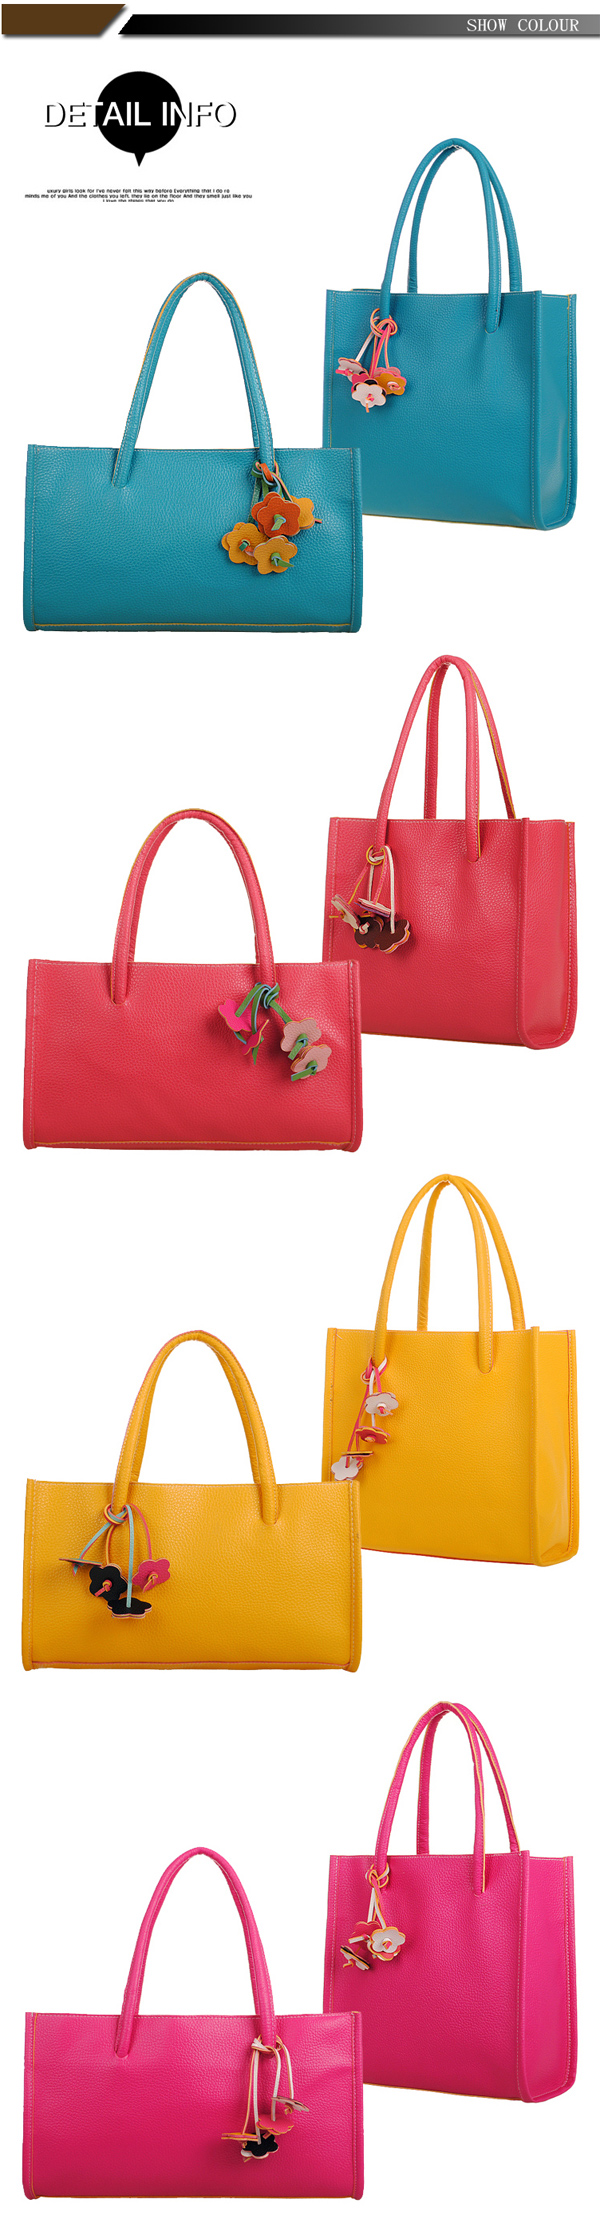 Women Multi Colors Handbag Shopping Bag Casual Tote Bag